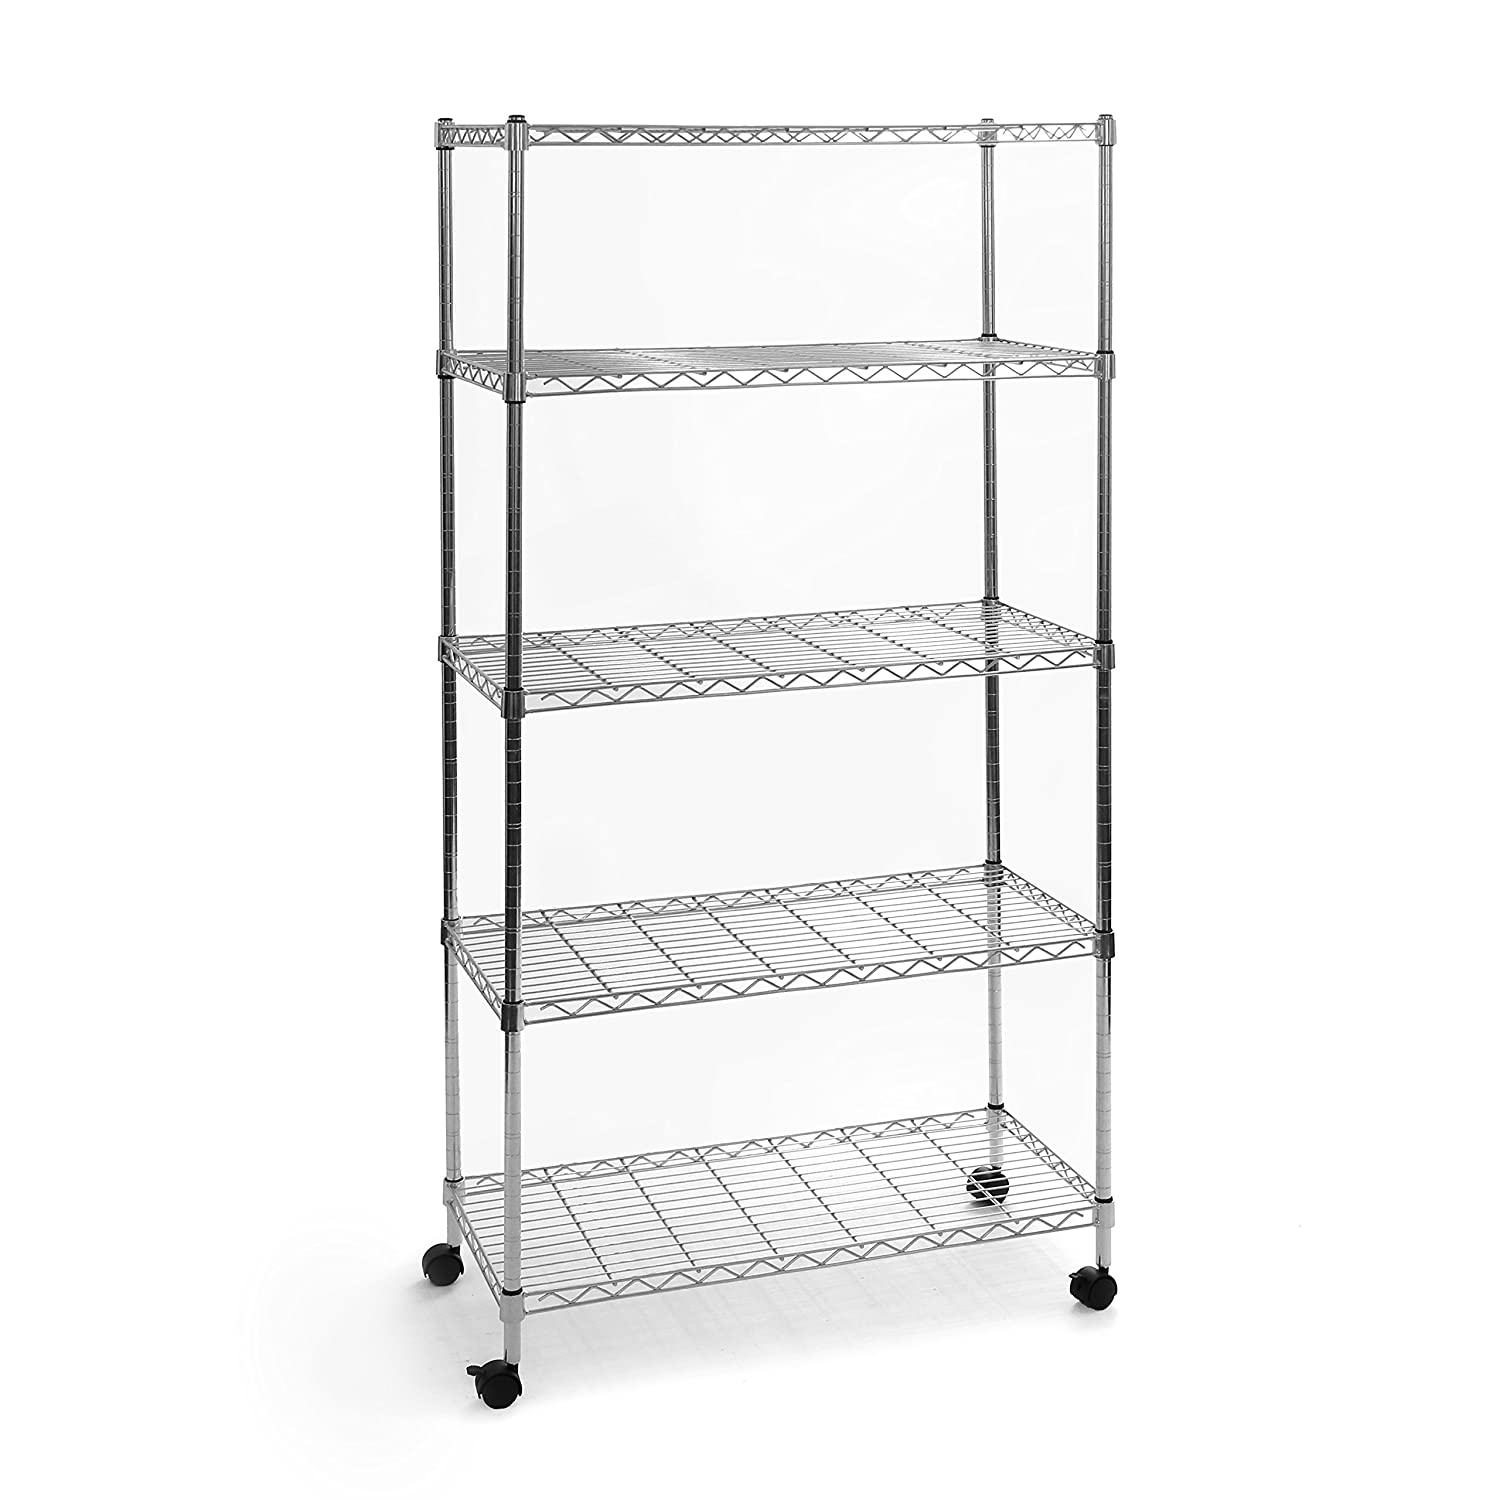 "Seville Classics 5-Tier Steel Wire Shelving /w Wheels, 14"" D x 30"" W x 60"" H"